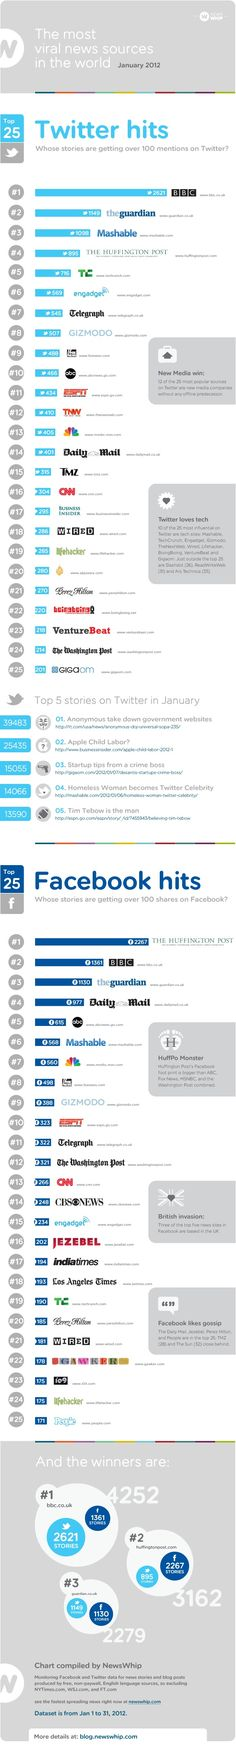 The top 25 most viral news sources on Facebook and Twitter #infographic @newswhip